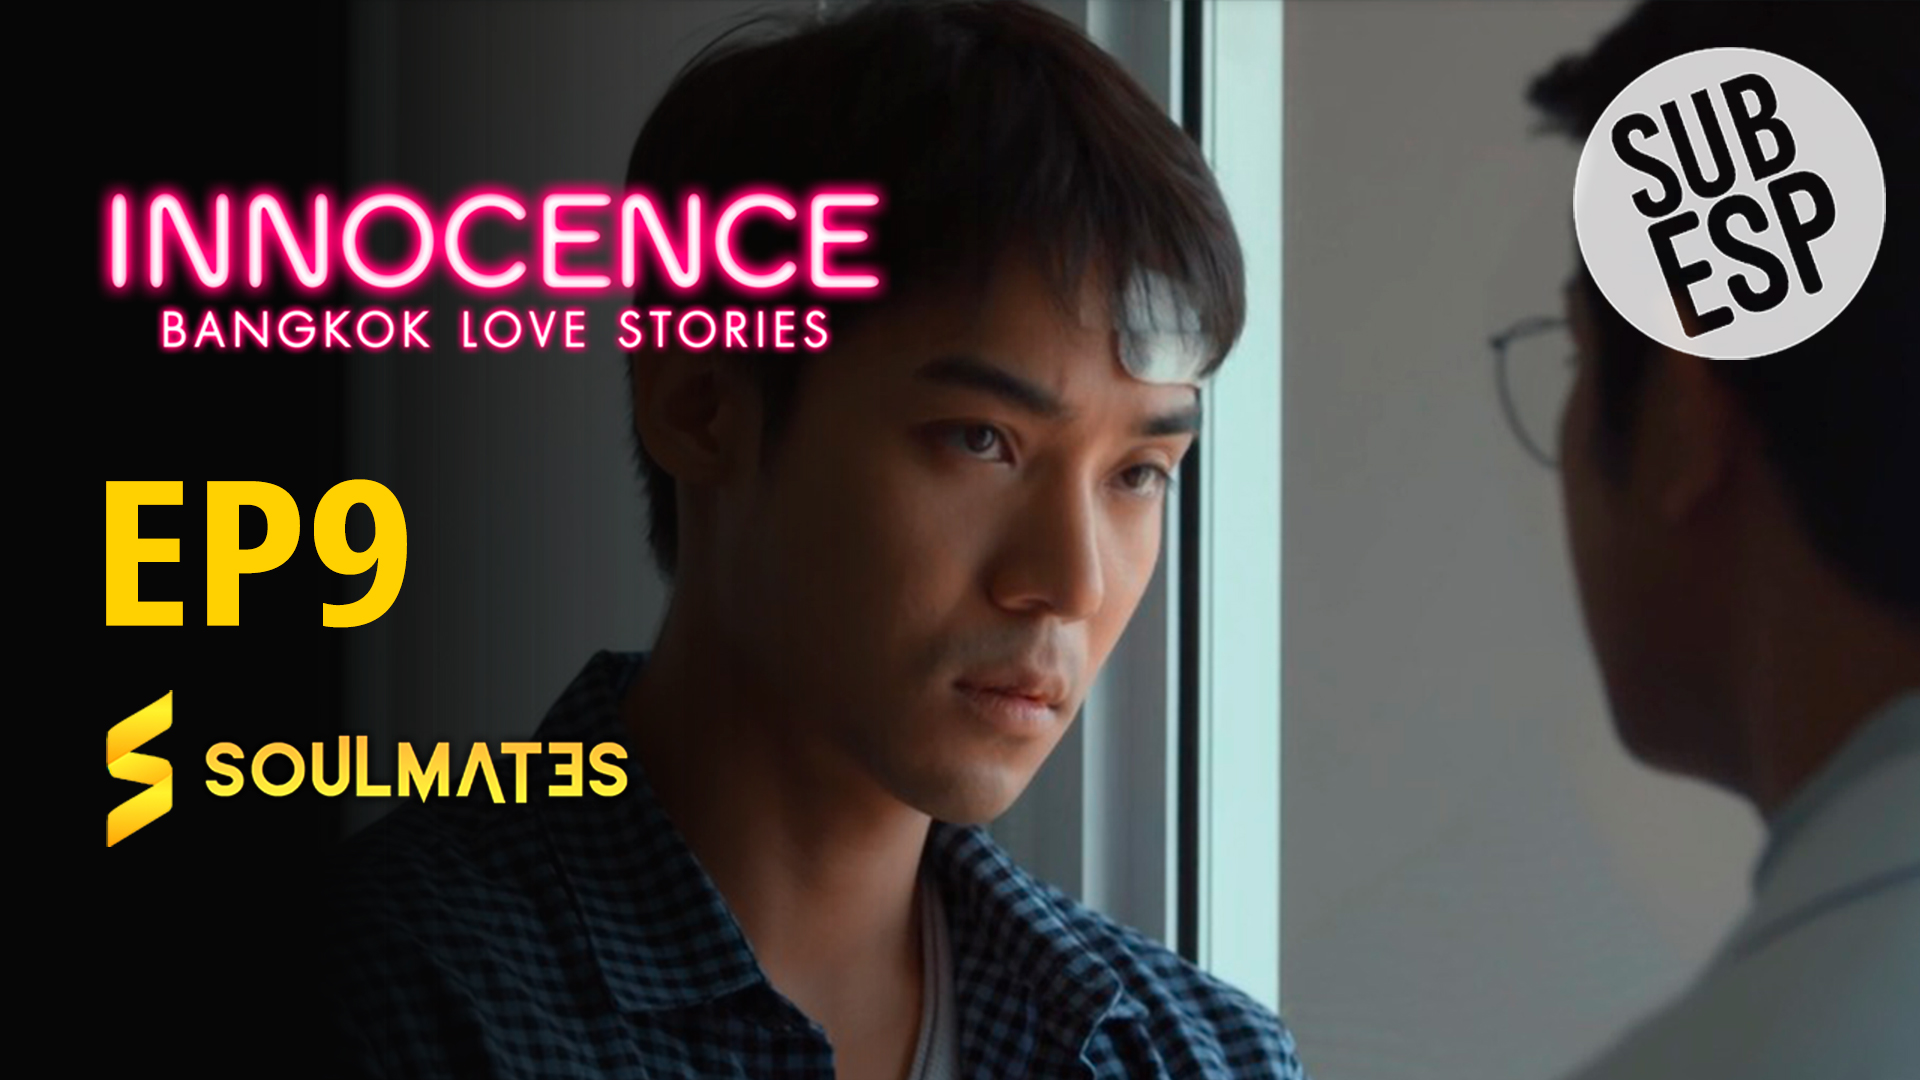 Bangkok Love Stories 2 Innocence : 1×9